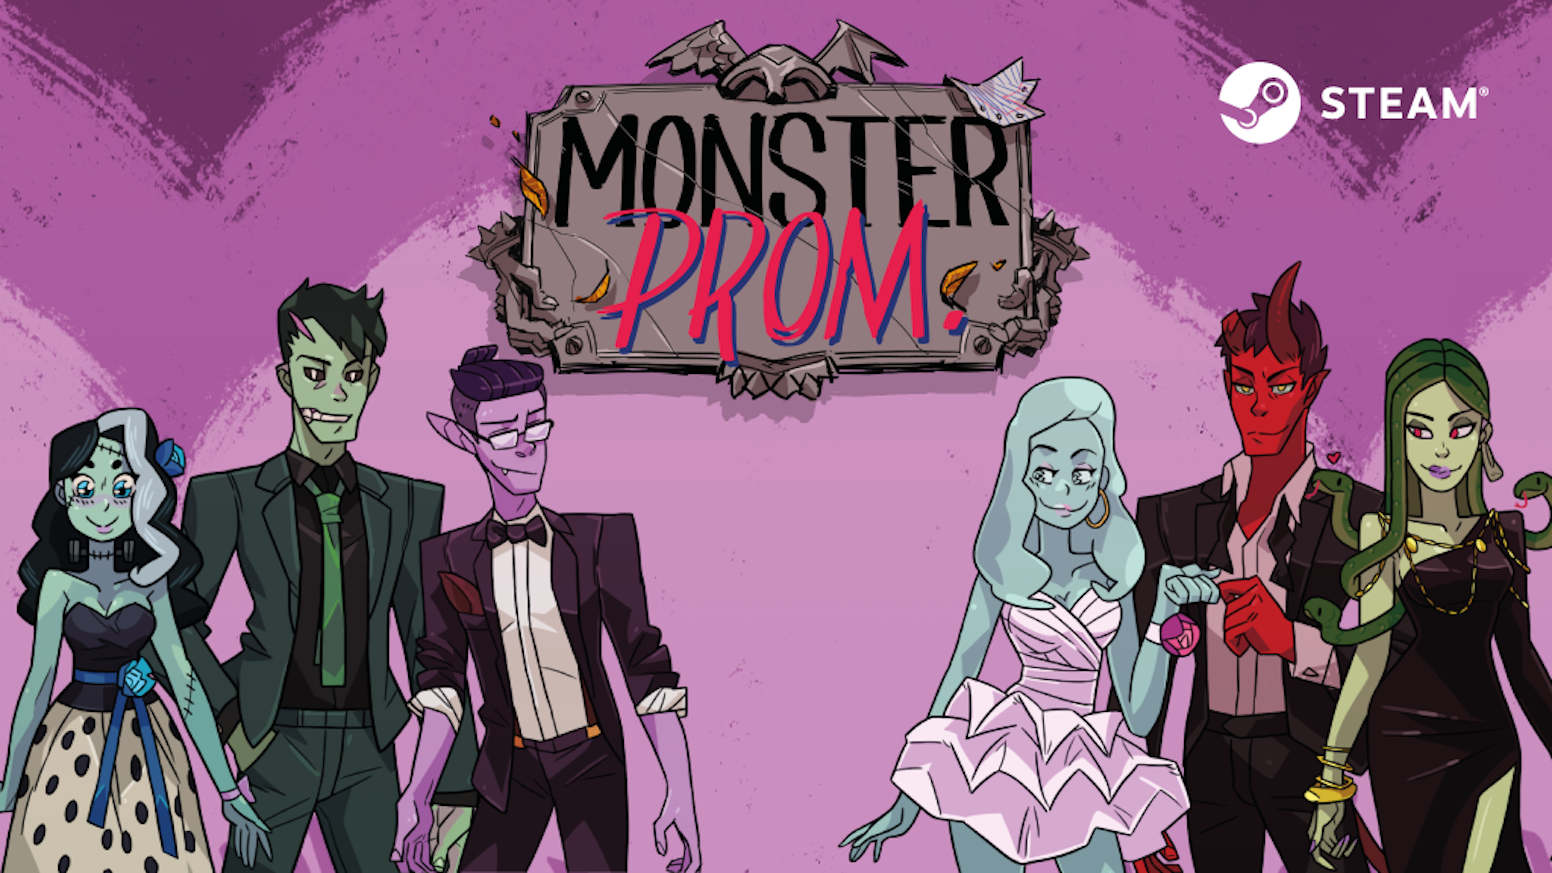 There are only 3 weeks left until prom! Go through all kinds of absurd and funny situations to seduce one of your monster classmates.